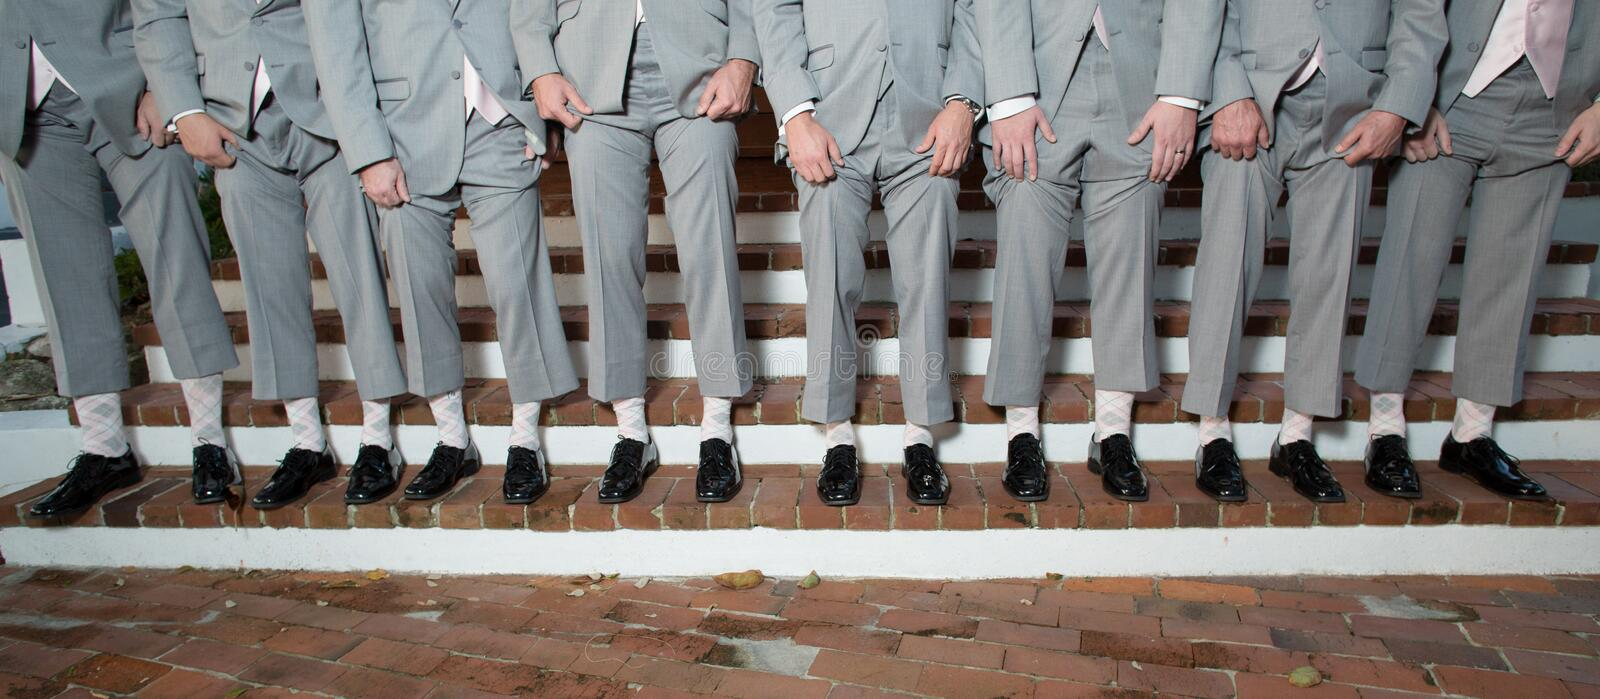 Line Of Men S Legs And Shoes Stock Image